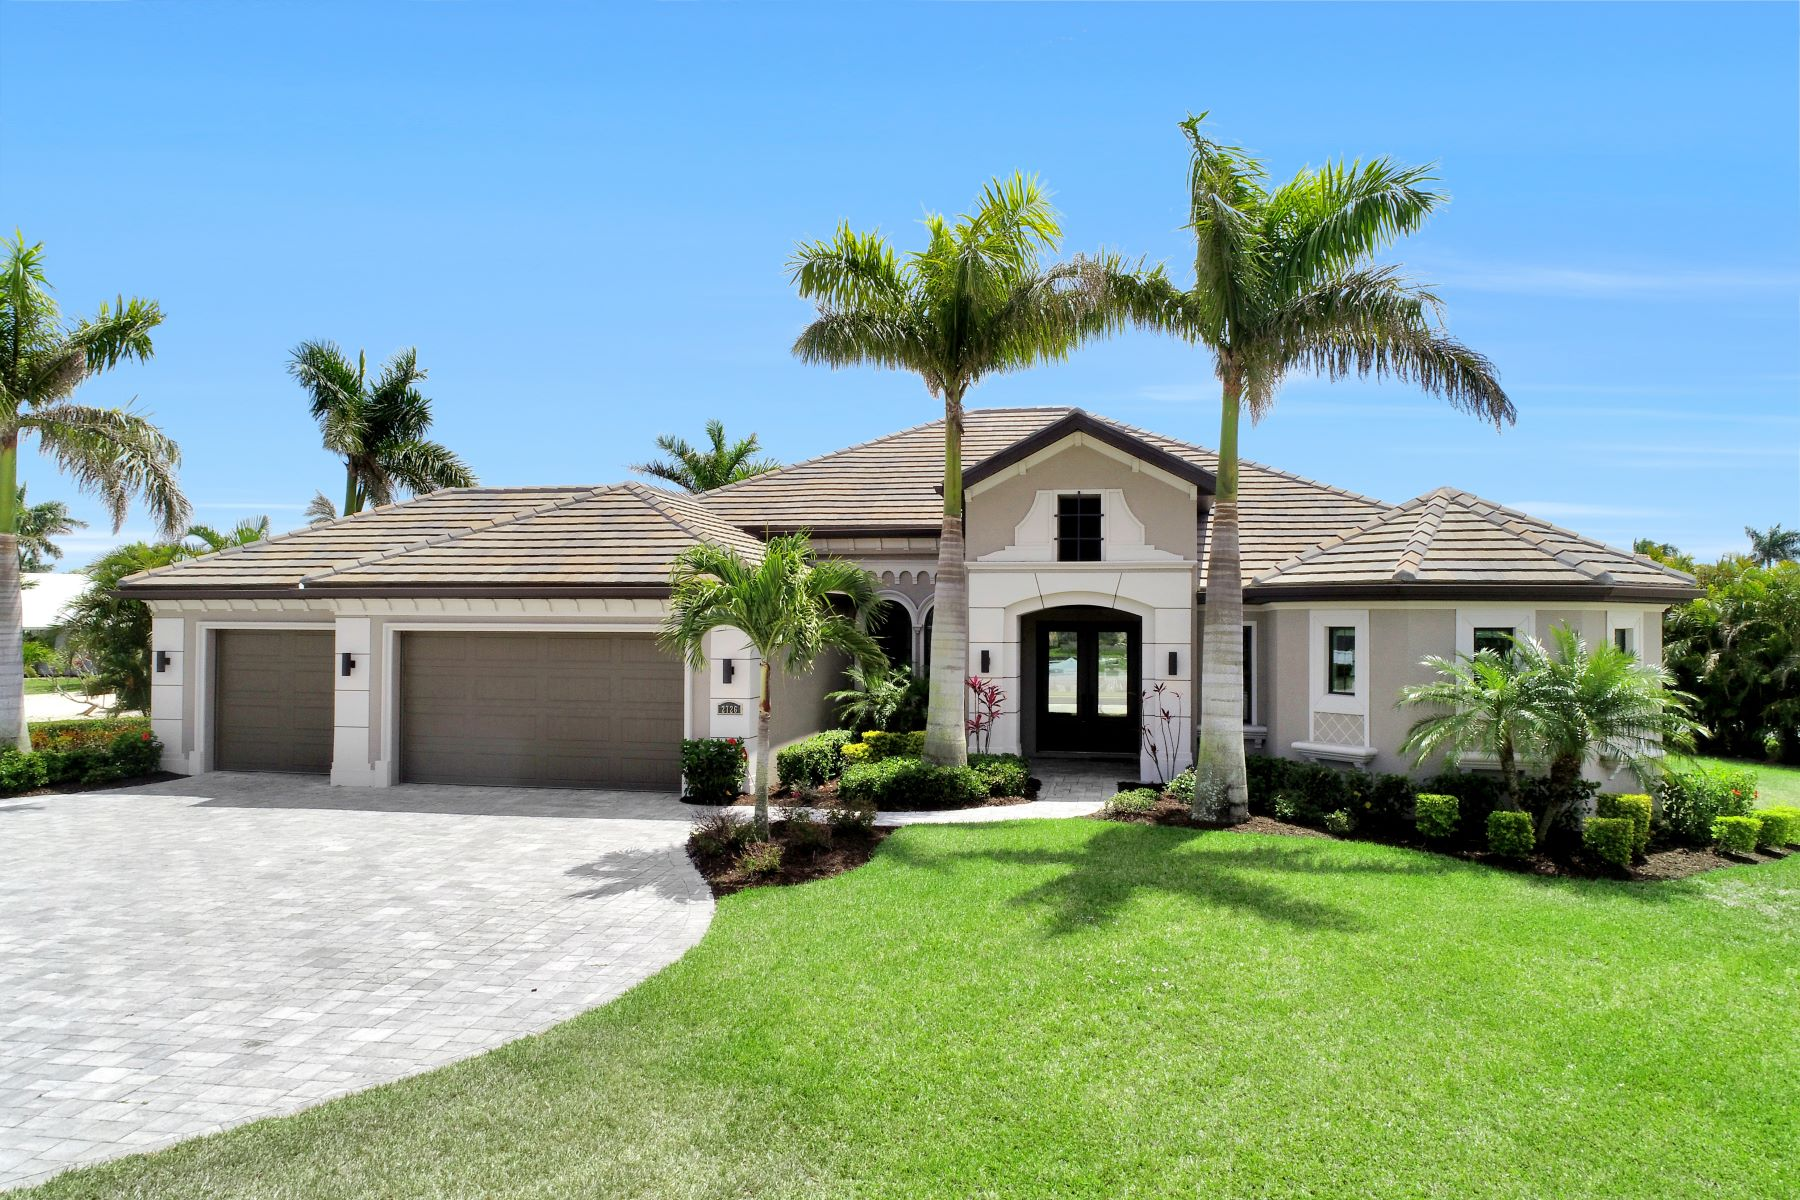 Single Family Home for Sale at CAPE CORAL 2726 SW 48th Terr Cape Coral, Florida 33914 United States